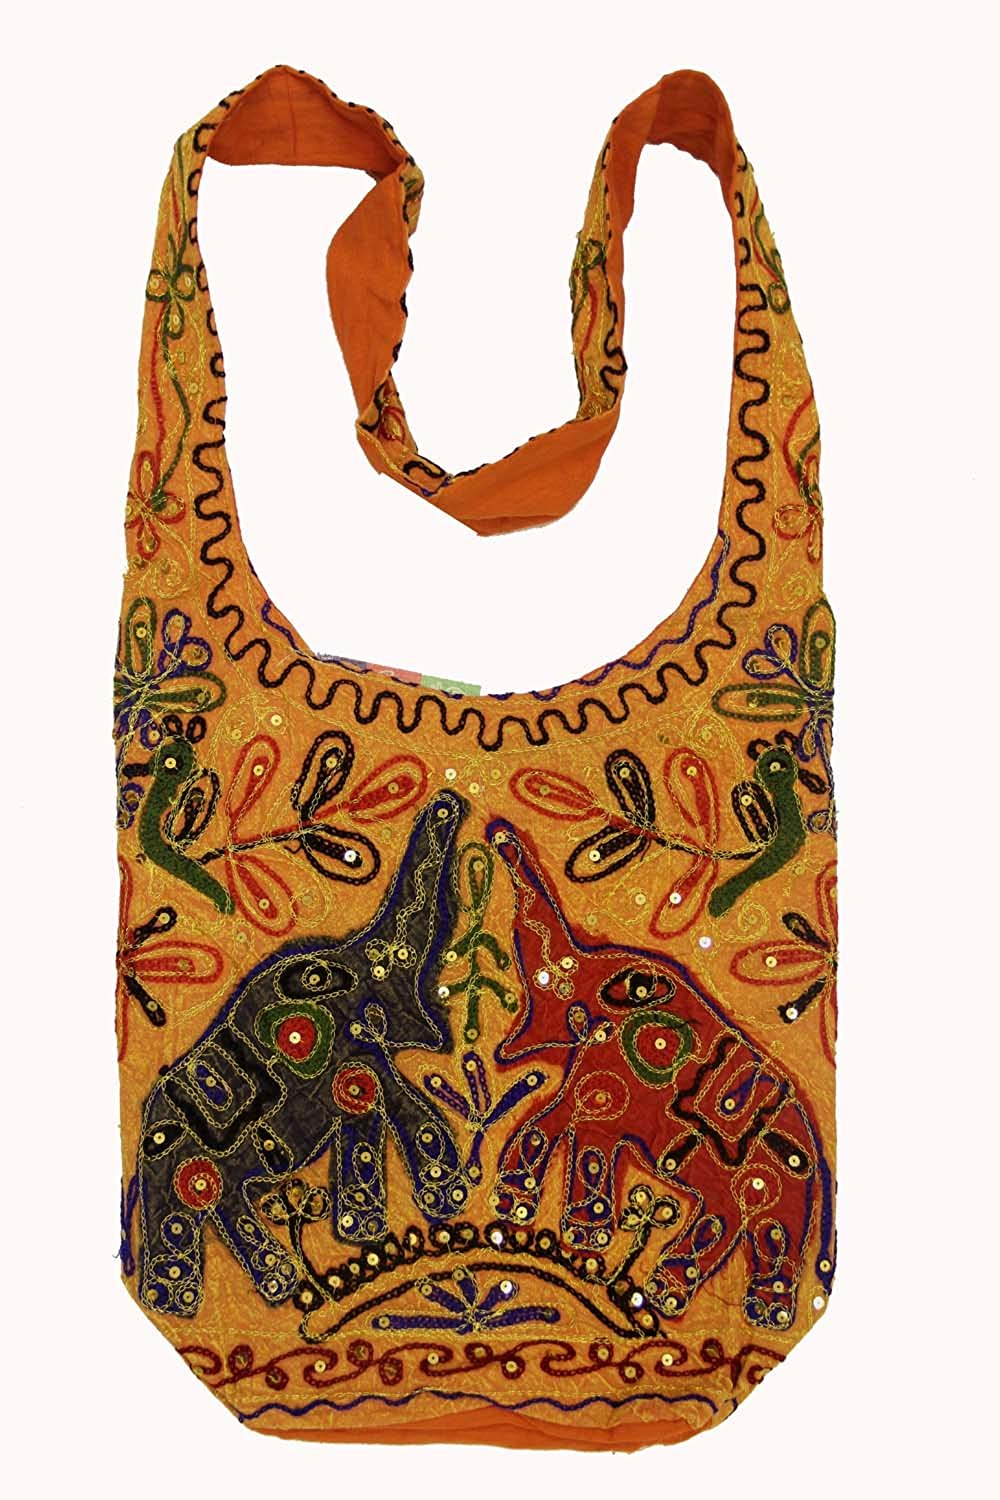 Hobo Bohemian Hippie Gypsy Big Elephant 2 Sides Handcrafted Embroidery Shoulder Sling Crossbody Monk Bag Purse India